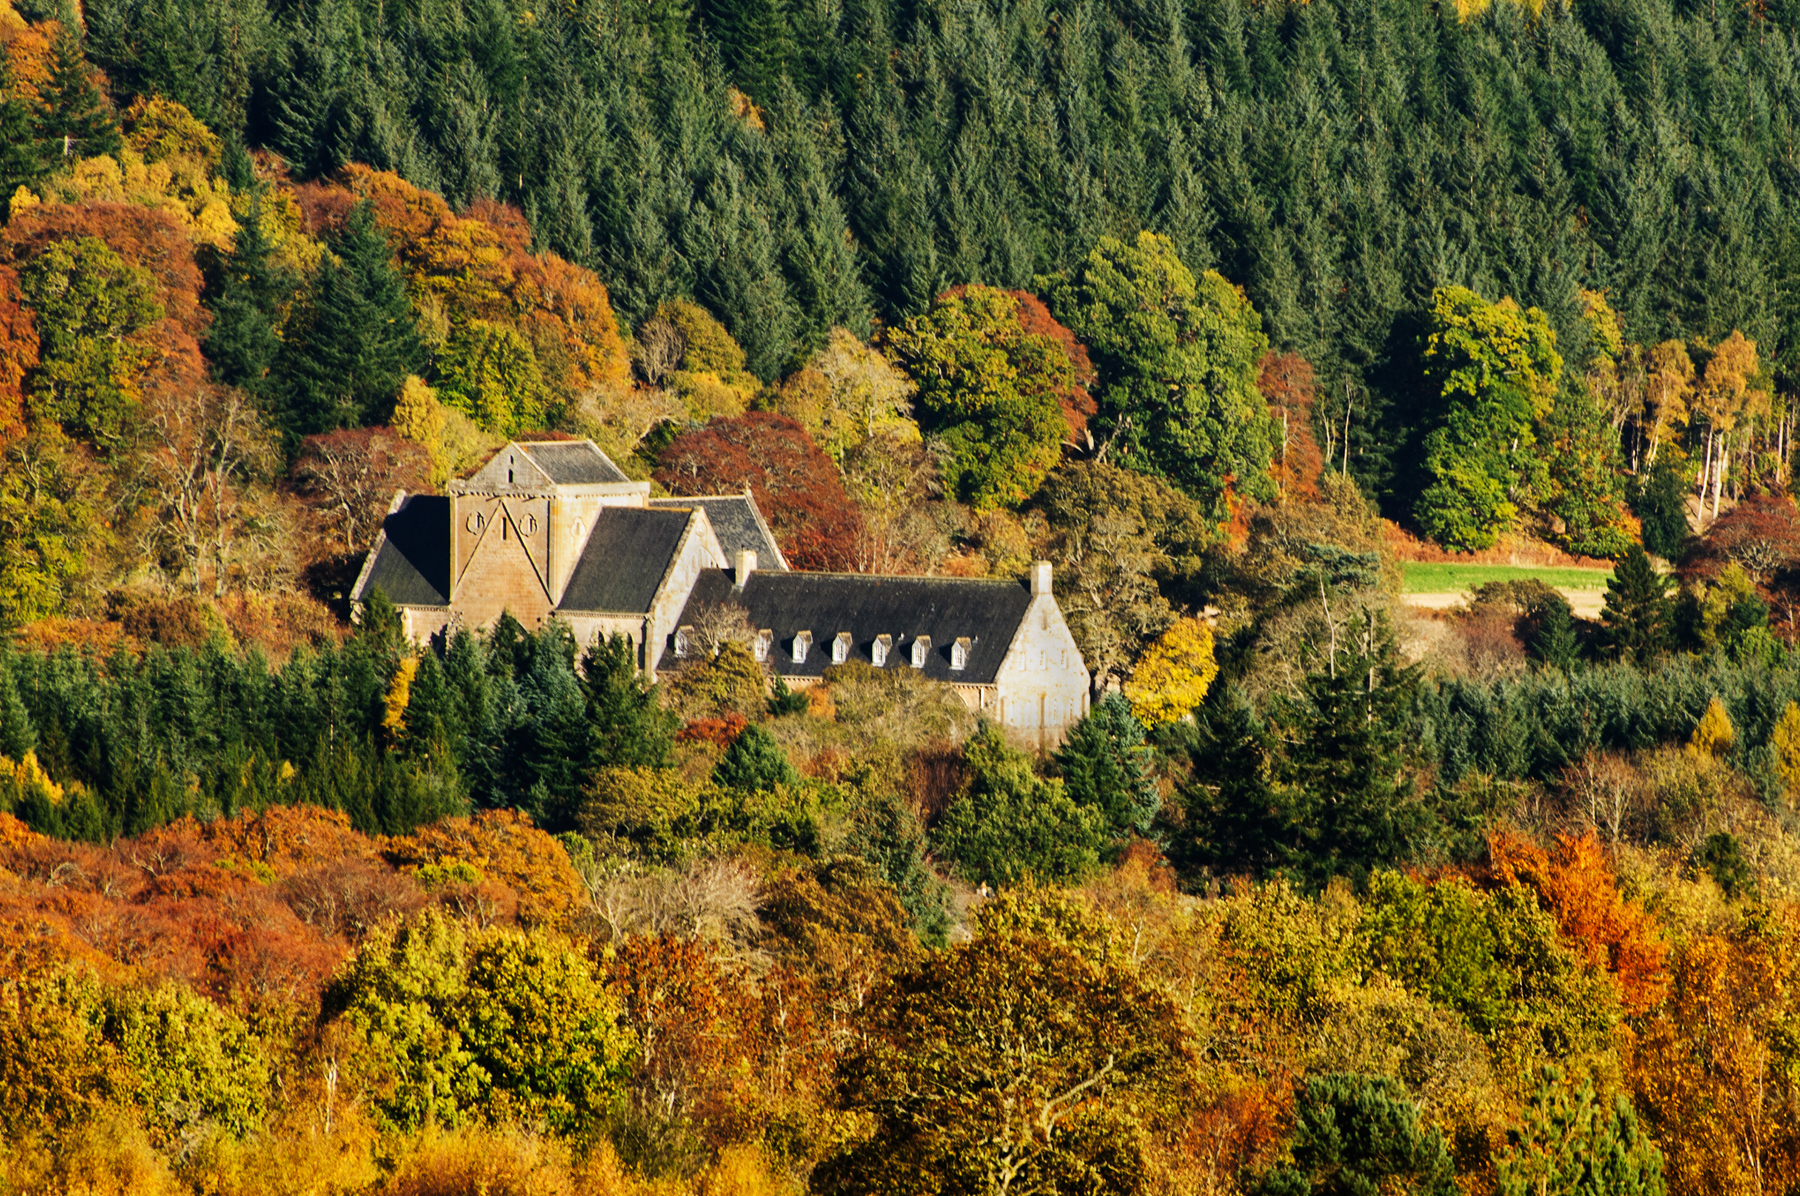 Pluscarden Abbey in Autumn. Image by Peter Chalmers